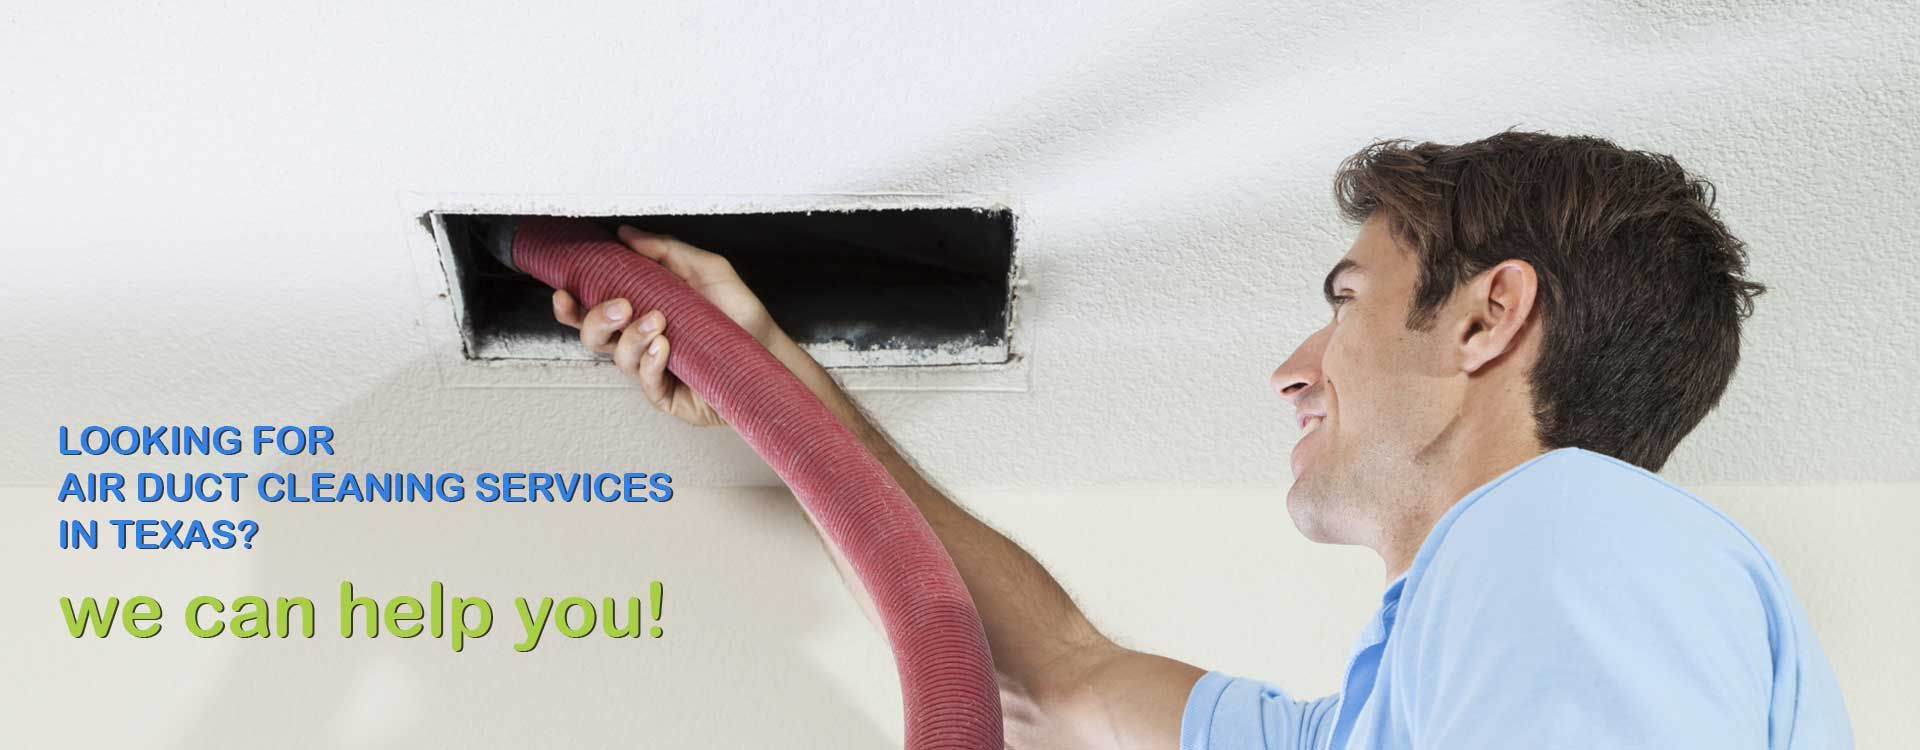 Air Duct Cleaning Dallas Texas (With images) Clean air